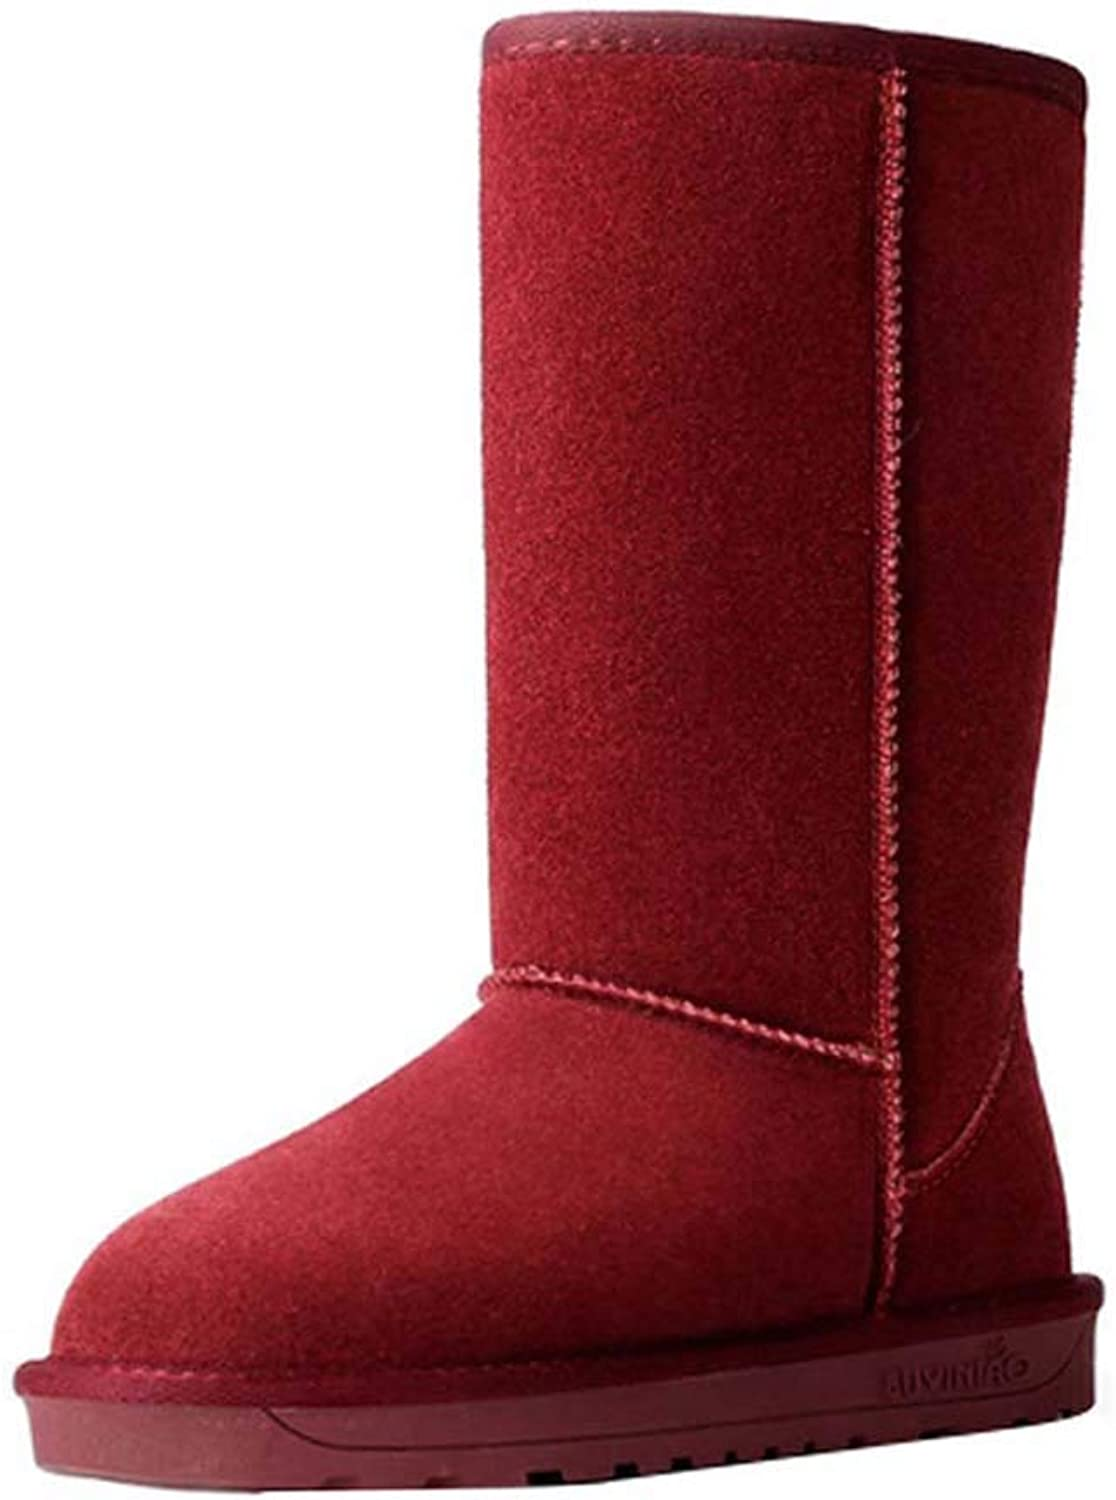 Uirend Women's Classic Suede Leather Tall Snow Boots - Casual Winter Lined Faux Fur Warm Comfortable Snow Boot